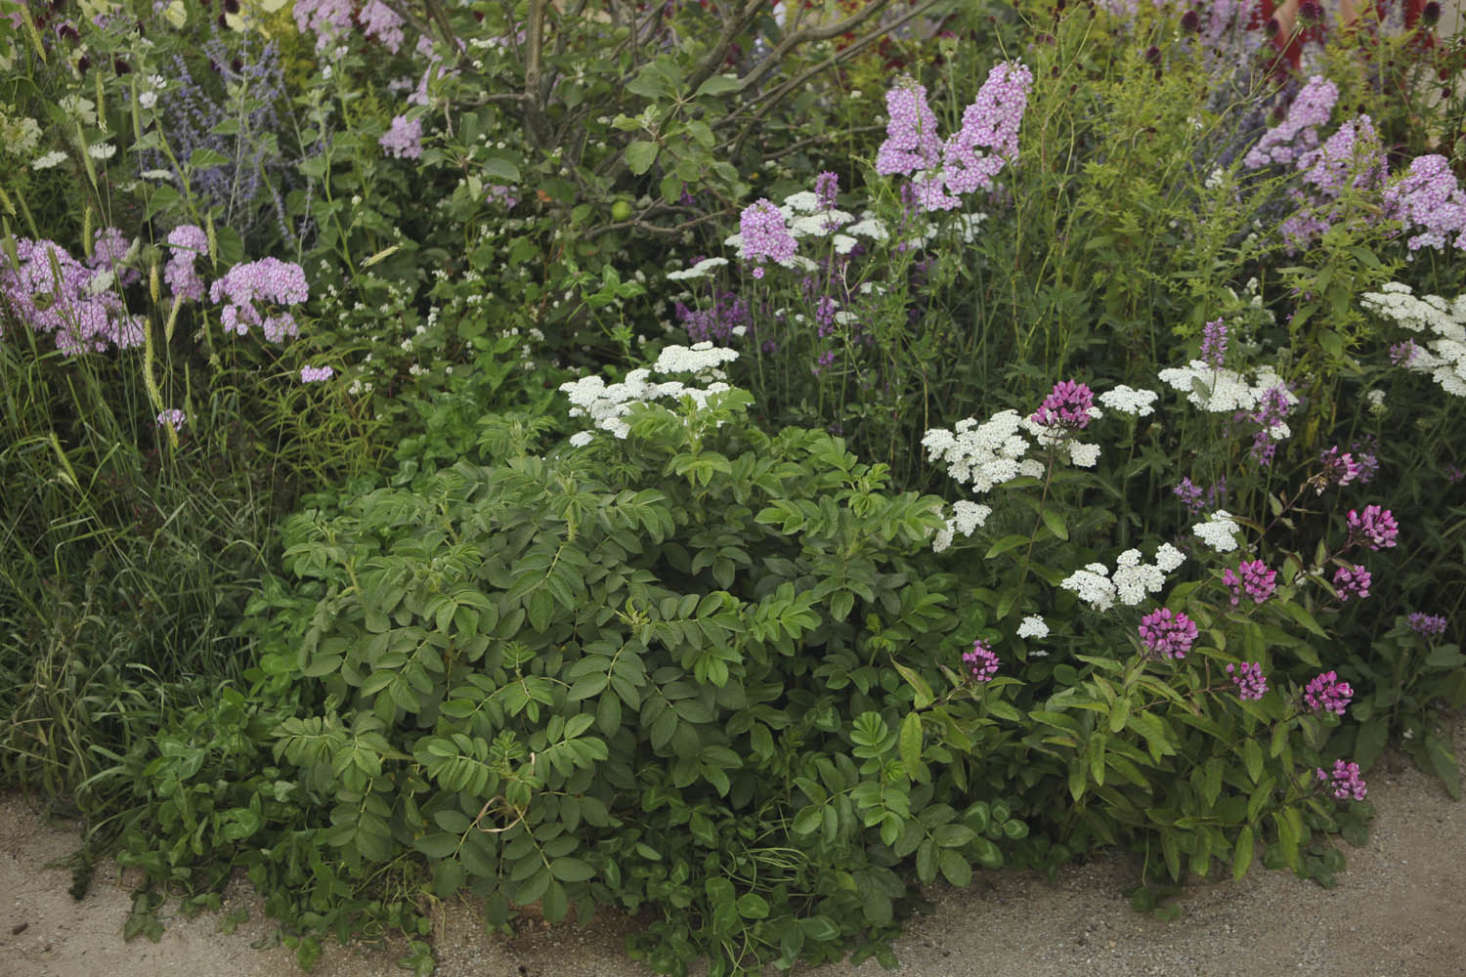 Healers, all. Rosa rugosa flanked by two-tonePhlox paniculata &#8